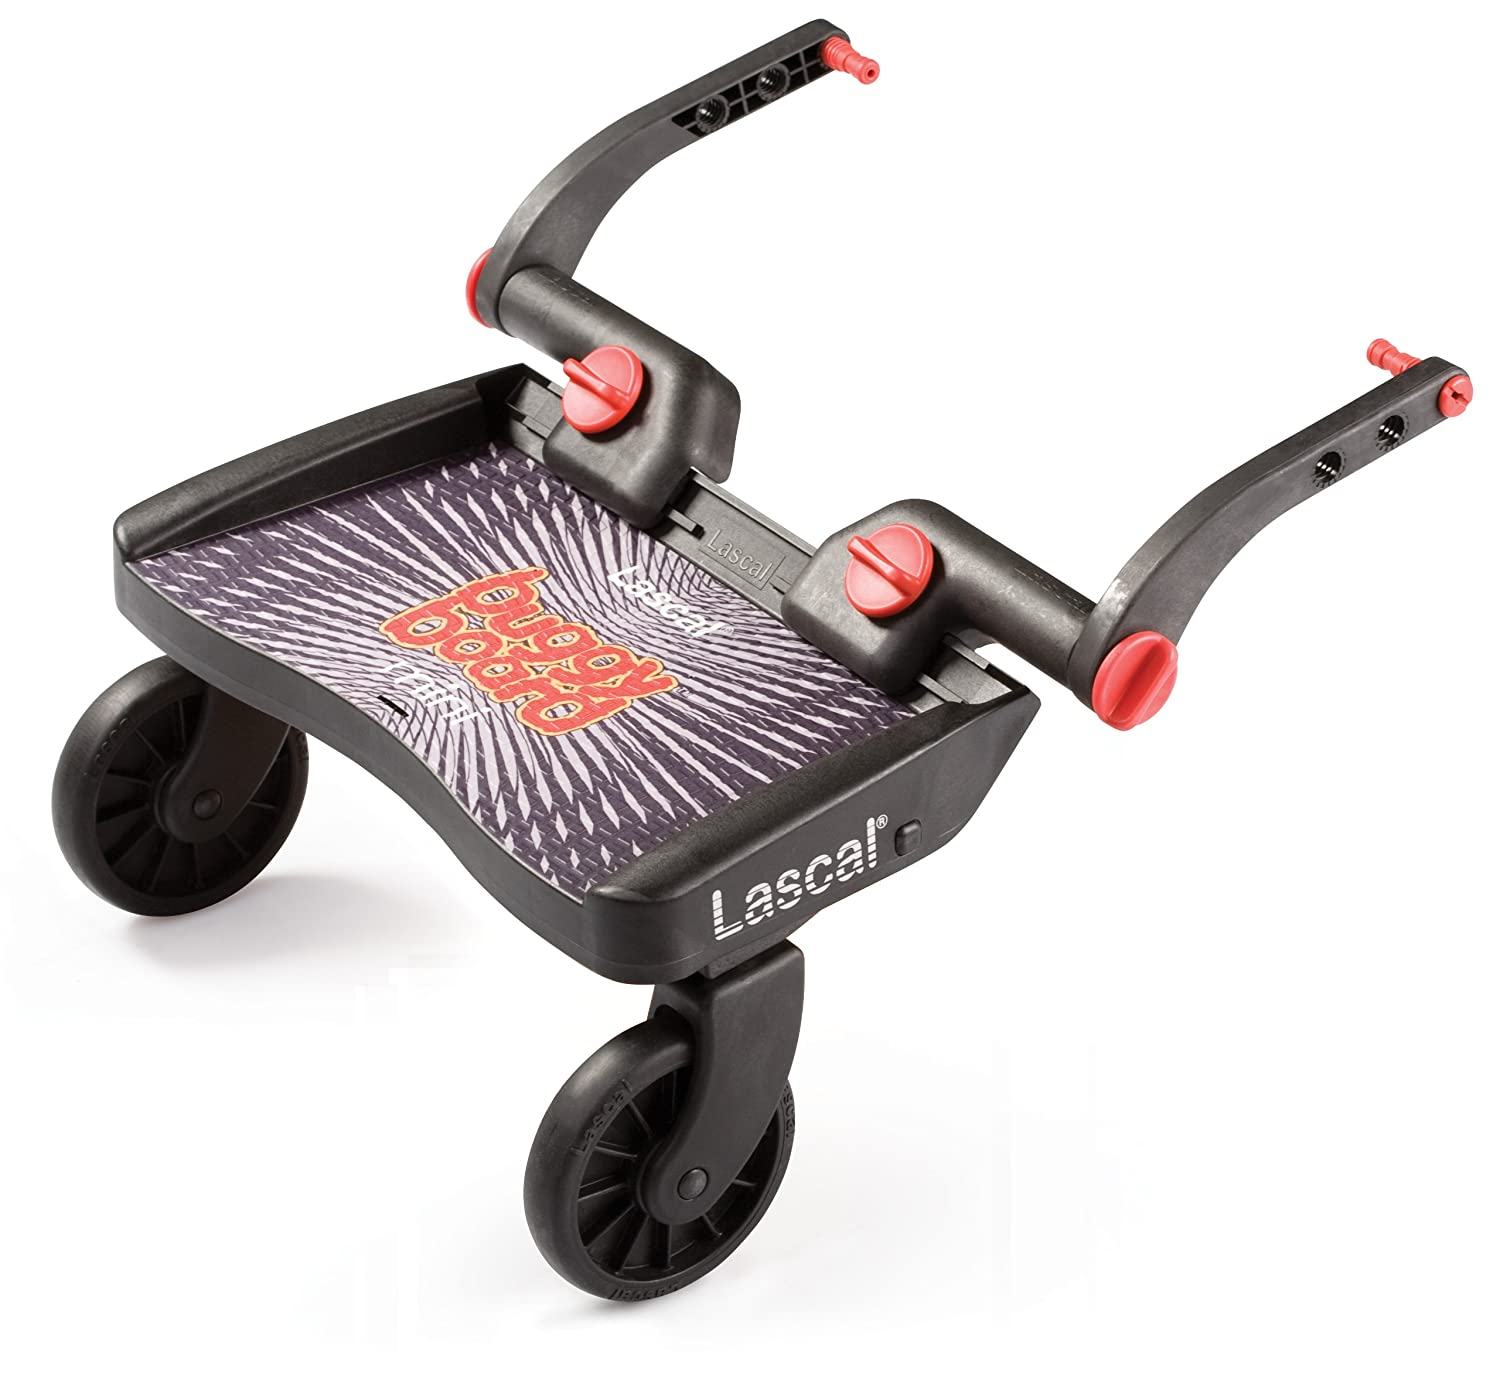 Lascal 2830 - Buggy Board Mini - Tabla con ruedas para carrito, color negro: Amazon.es: Bebé